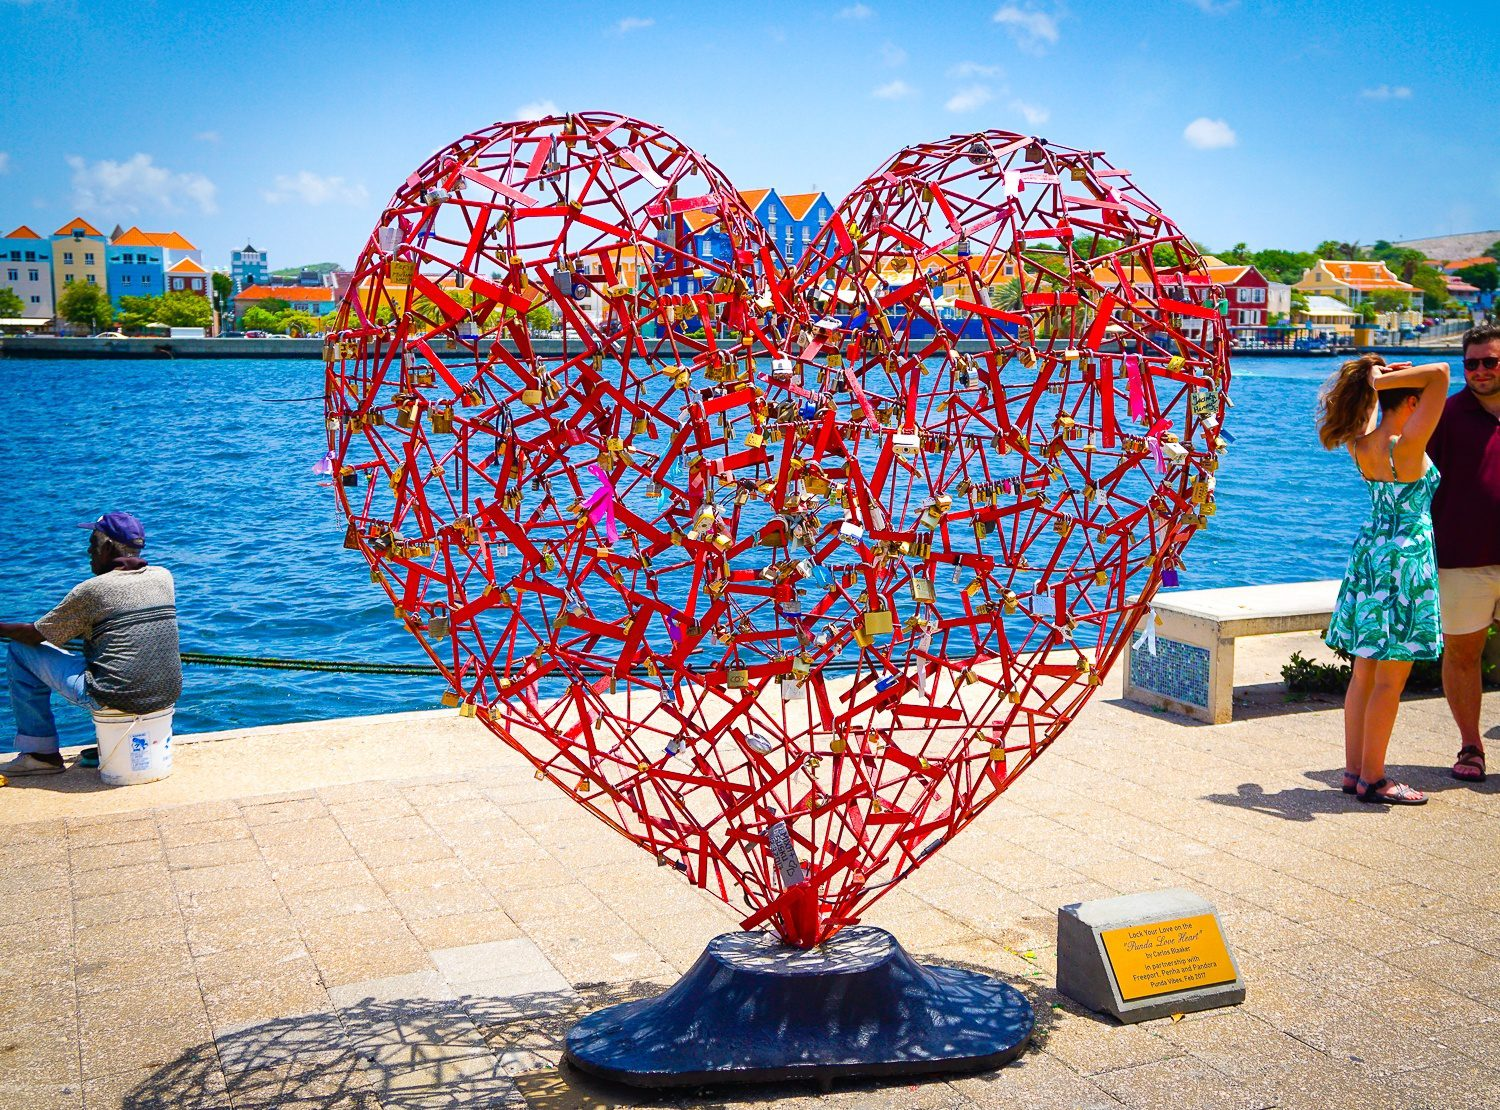 Heart art by Willemstad's waterfront.